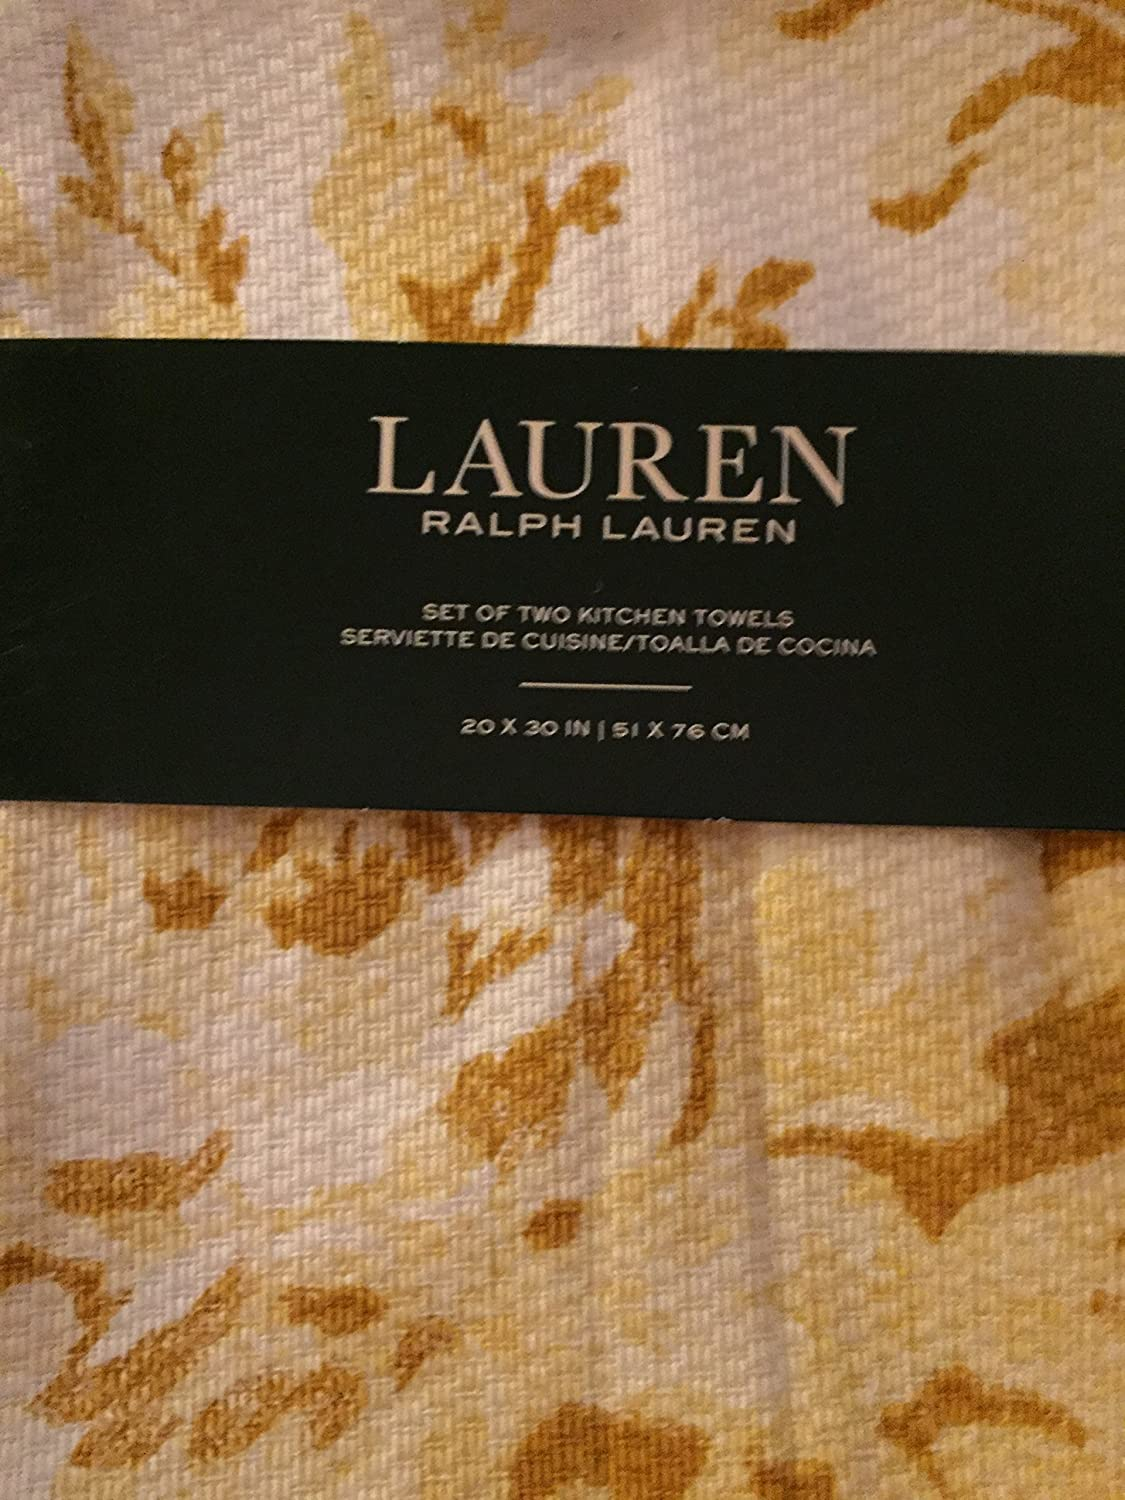 Amazon.com: Ralph Lauren Set of Two Kitchen Towels White and Yellow: Home & Kitchen